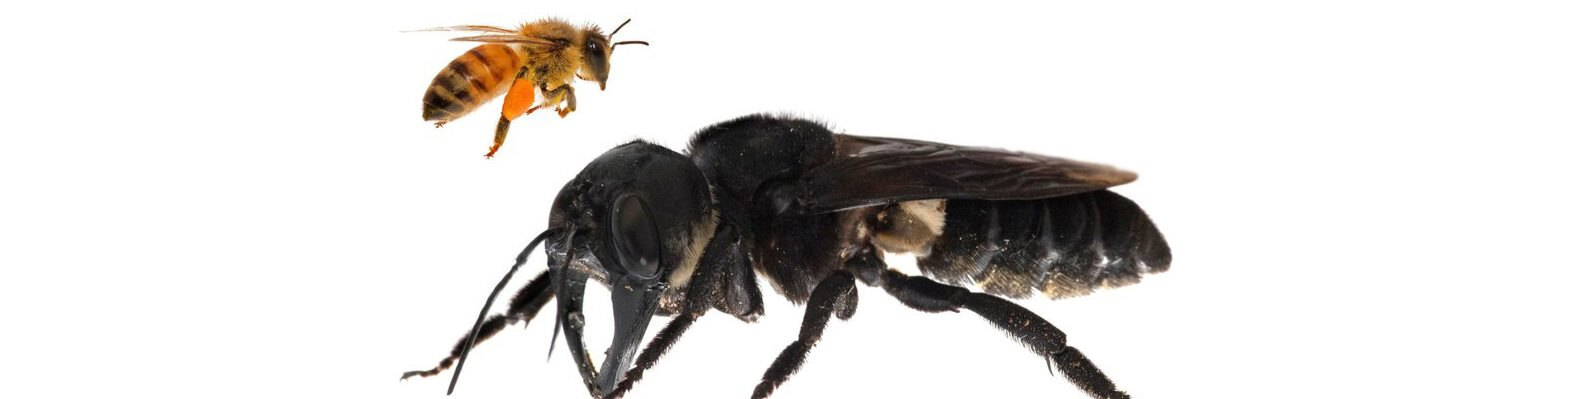 Giant bee compared to a honey bee